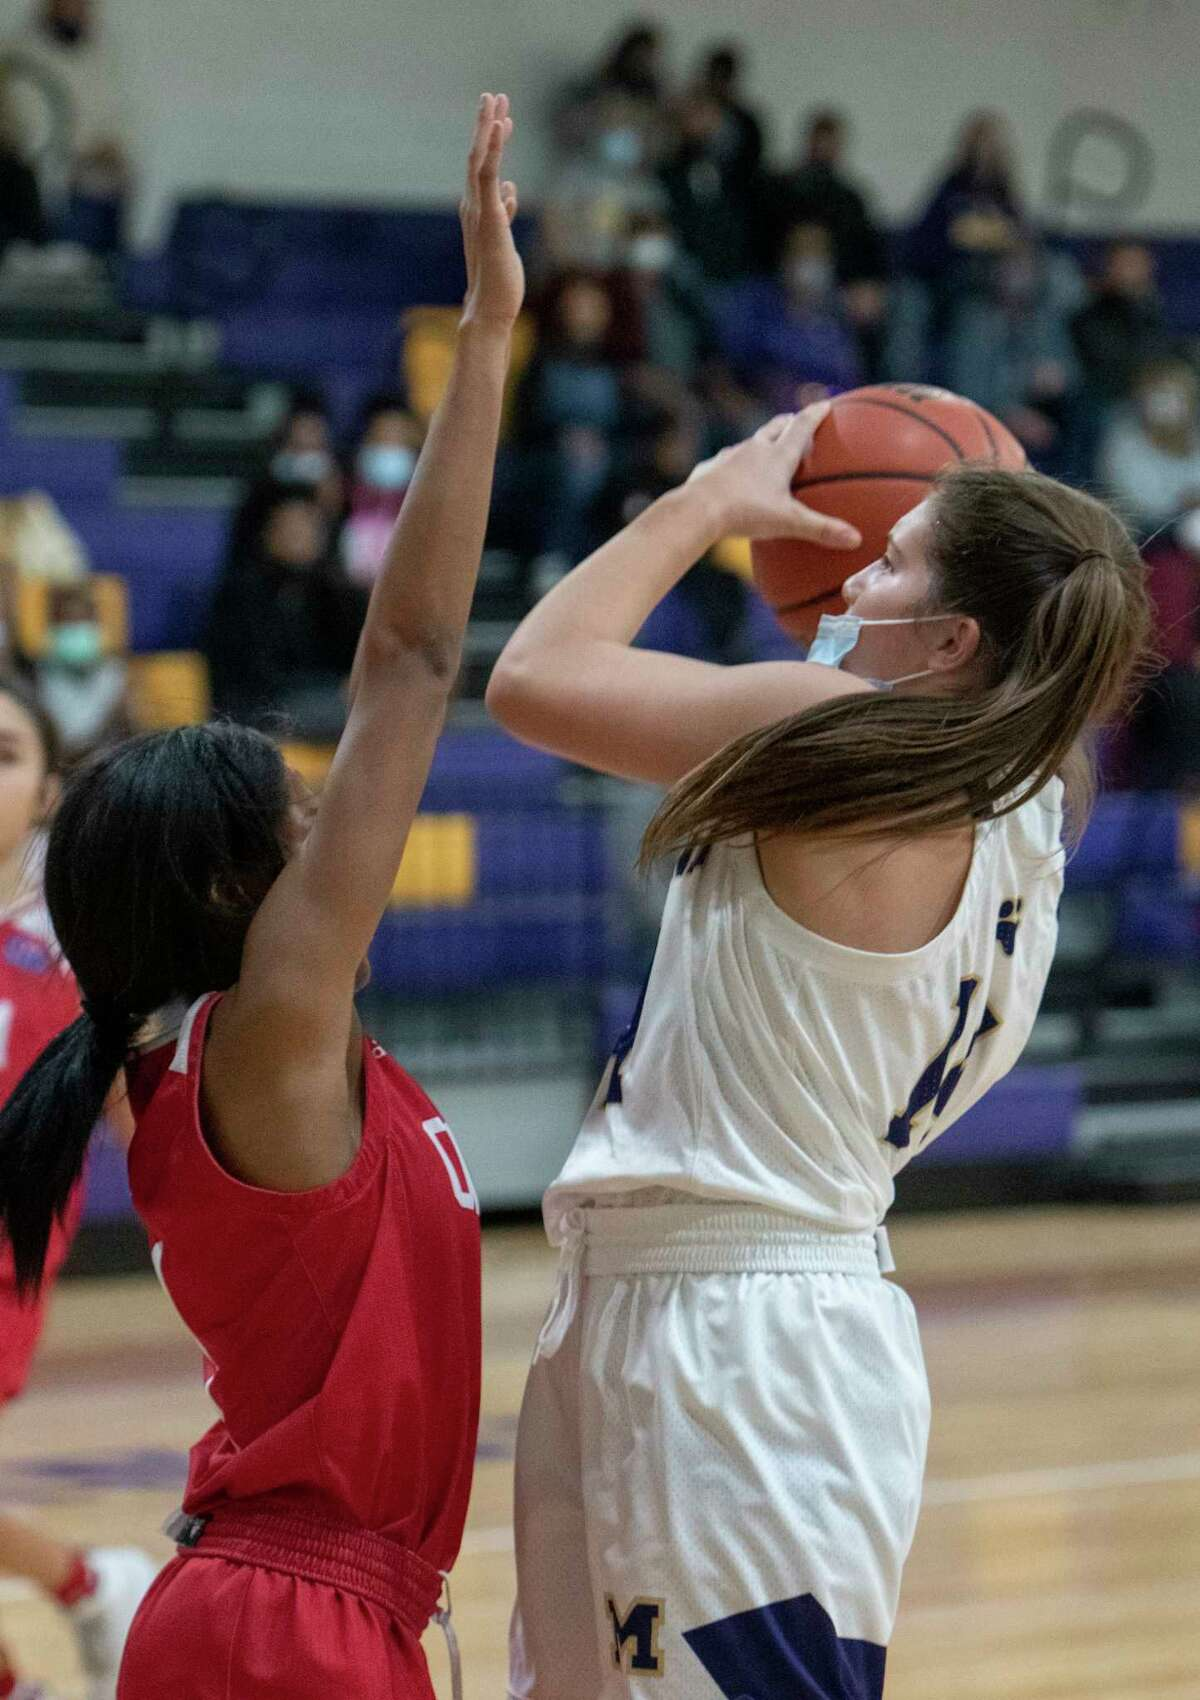 Midland High's Shelby Stephens pulls up for a shot over Odessa High's Kiki Lide 01/15/2021 at the Midland High gym. Tim Fischer/Reporter-Telegram